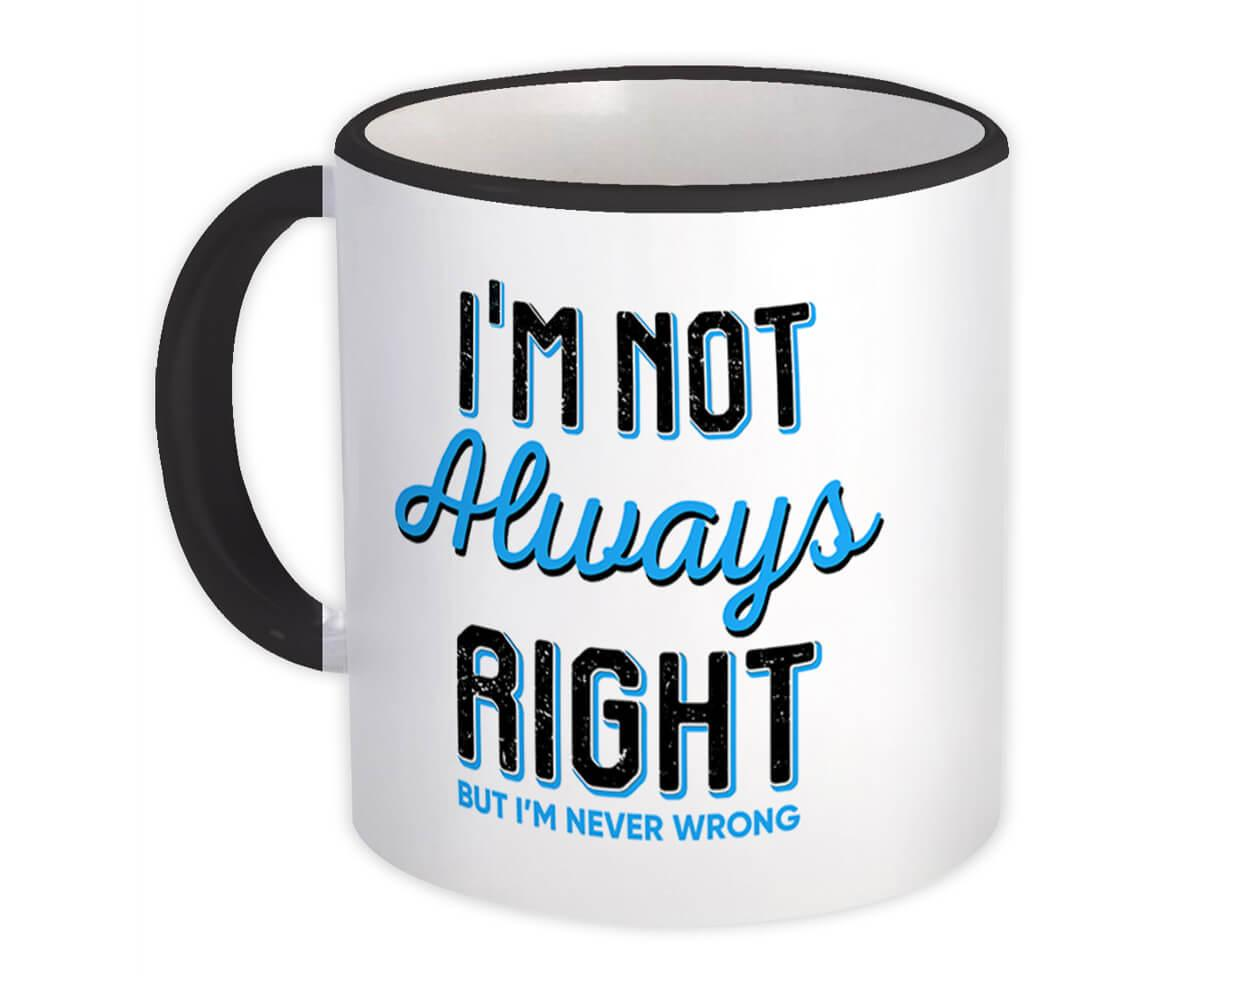 I am Not Always Right : Gift Mug But Never Wrong Boss Wife Husband Funny Work